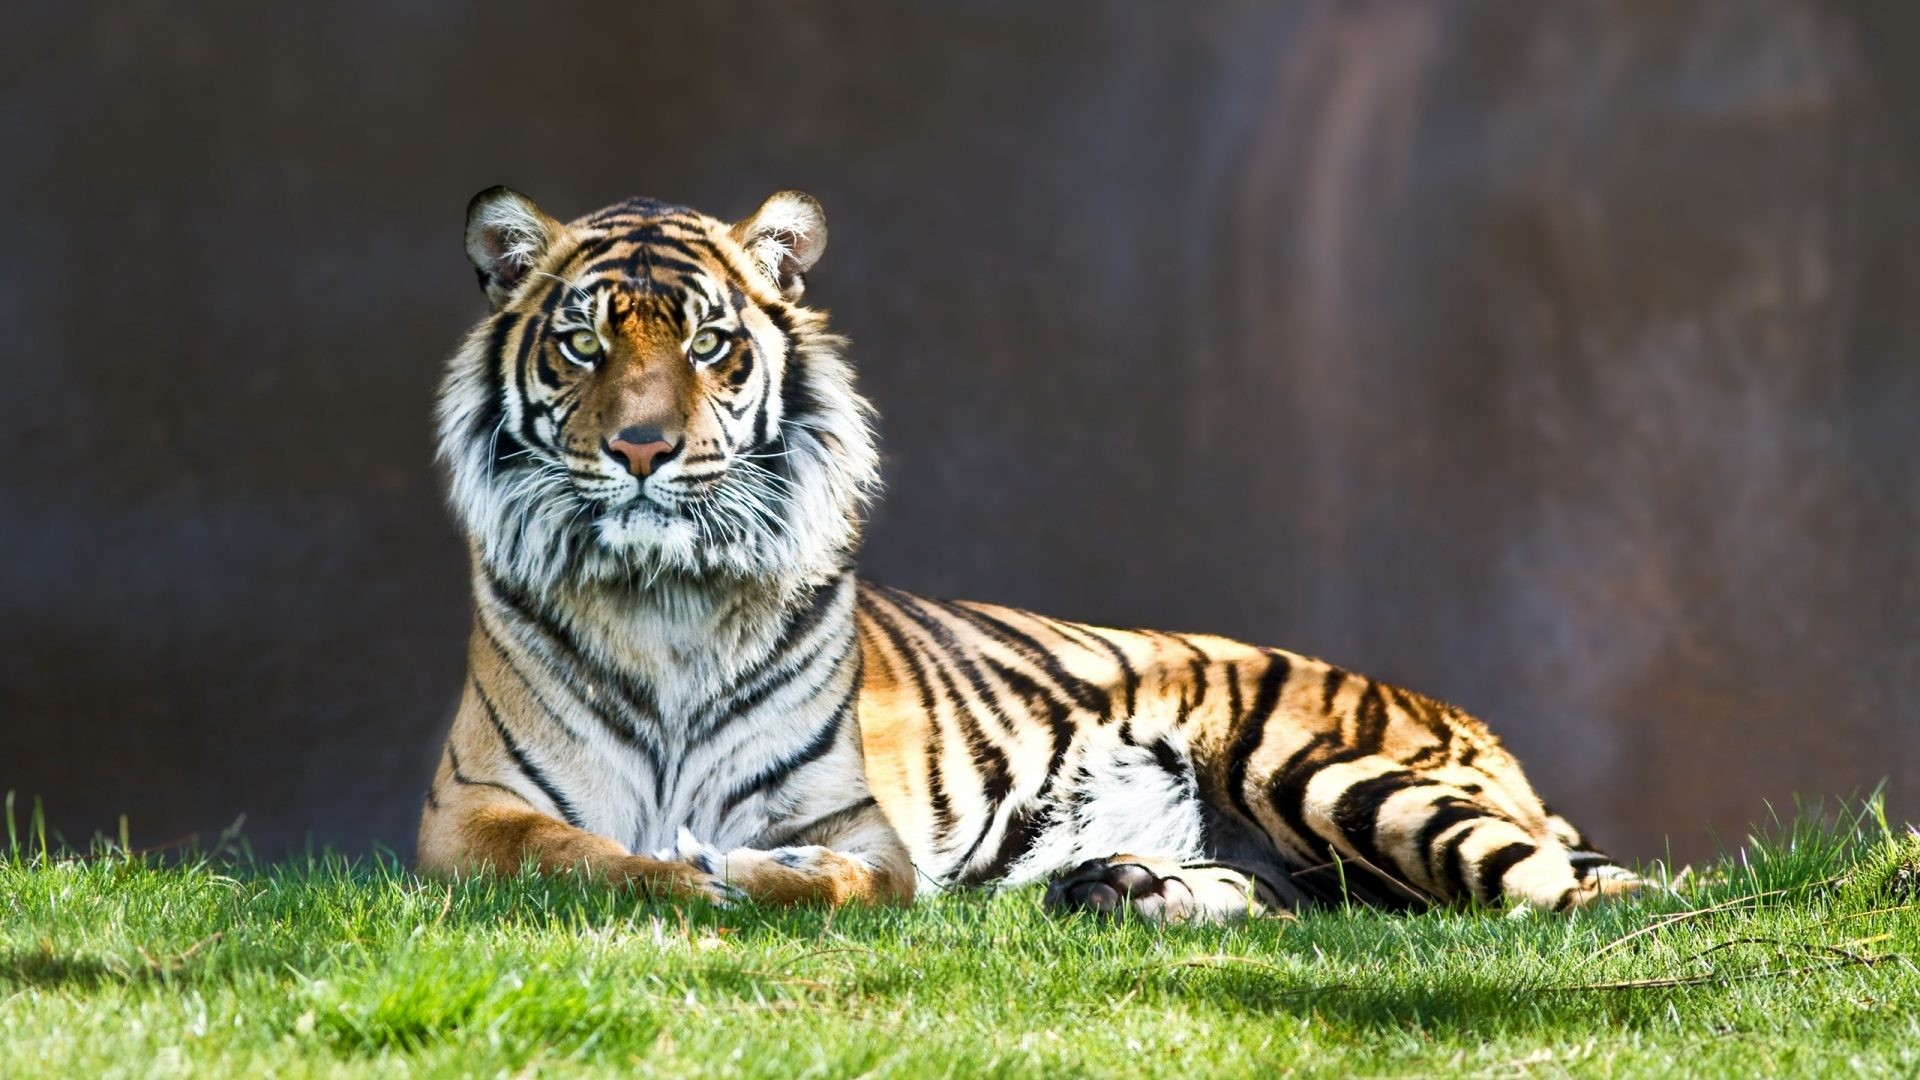 Cats – Tiger Japanese Cat Images for HD 16:9 High Definition 1080p 900p 720p